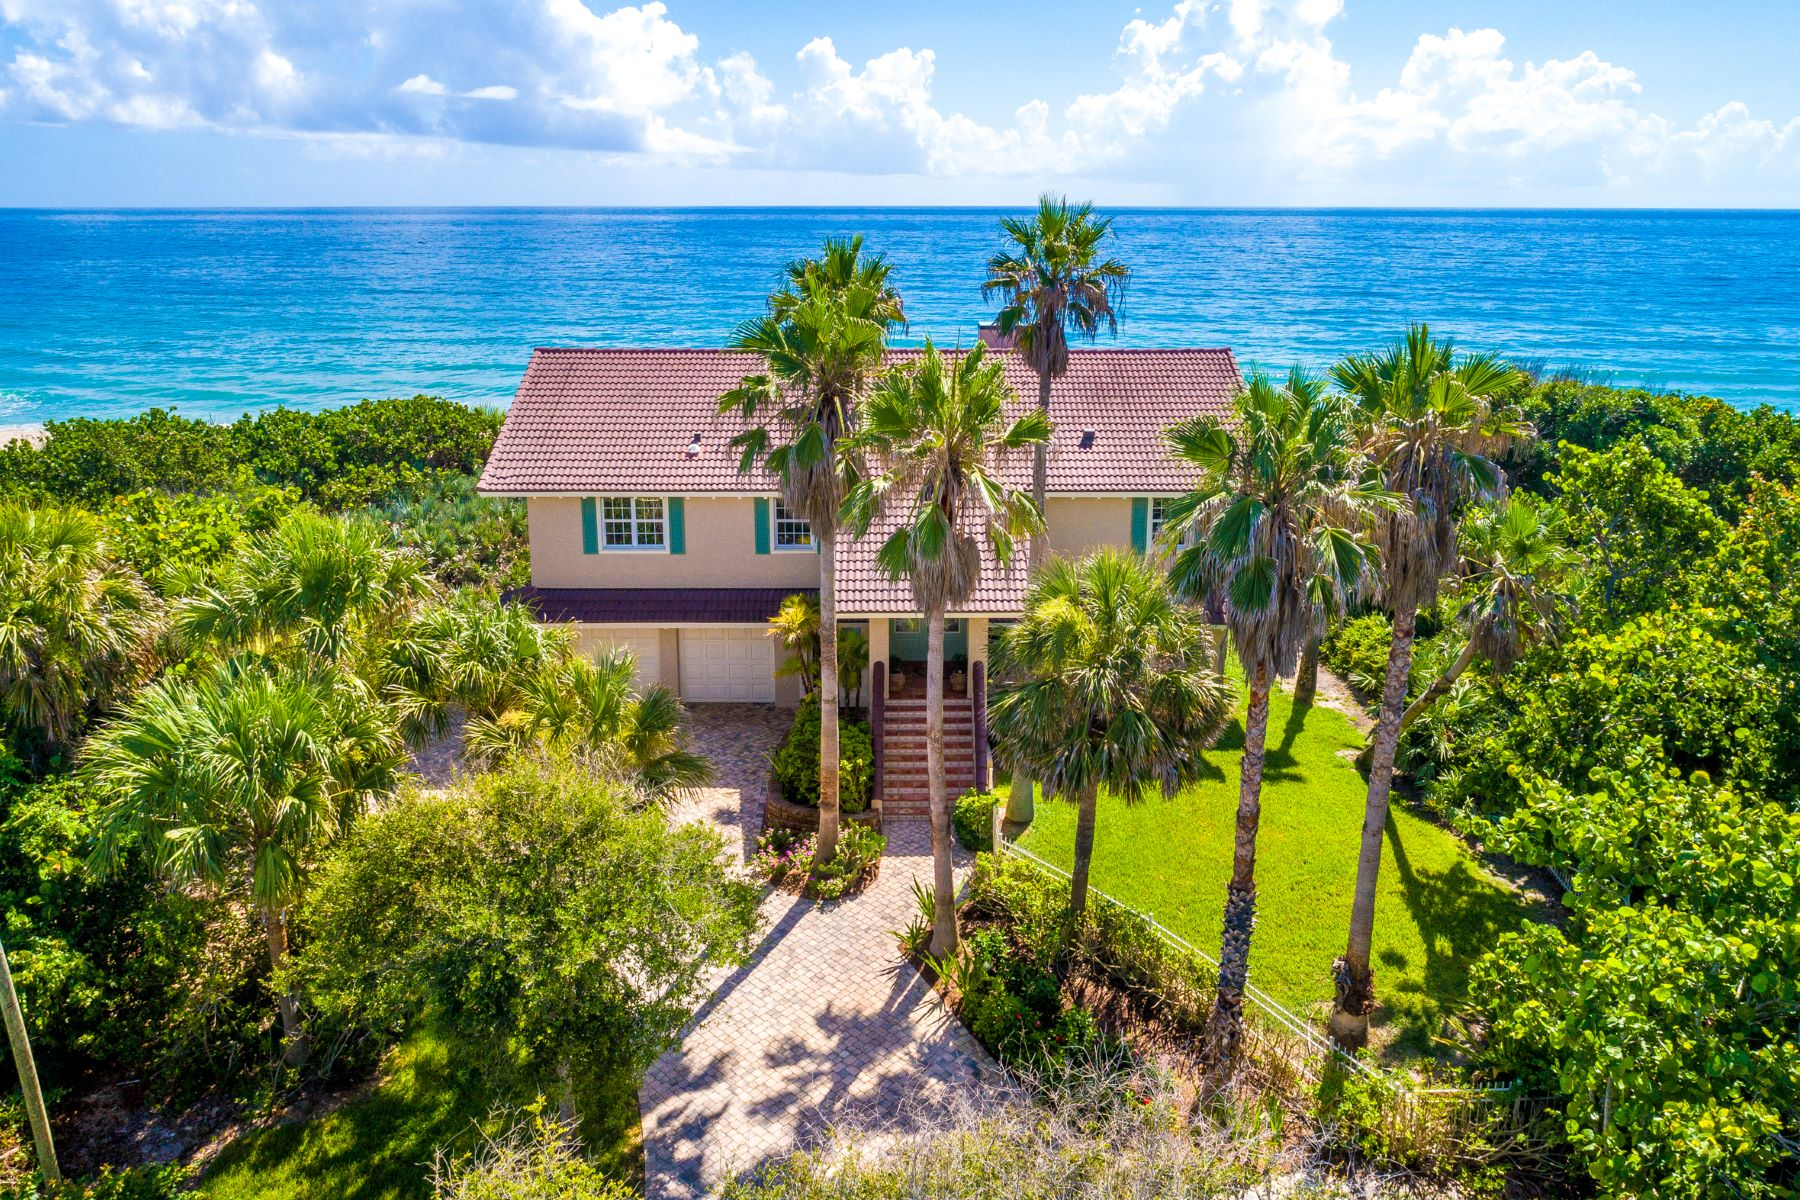 Single Family Homes for Sale at Completely Renovated Oceanfront Dream Home 9515 S Highway A1A Melbourne Beach, Florida 32951 United States